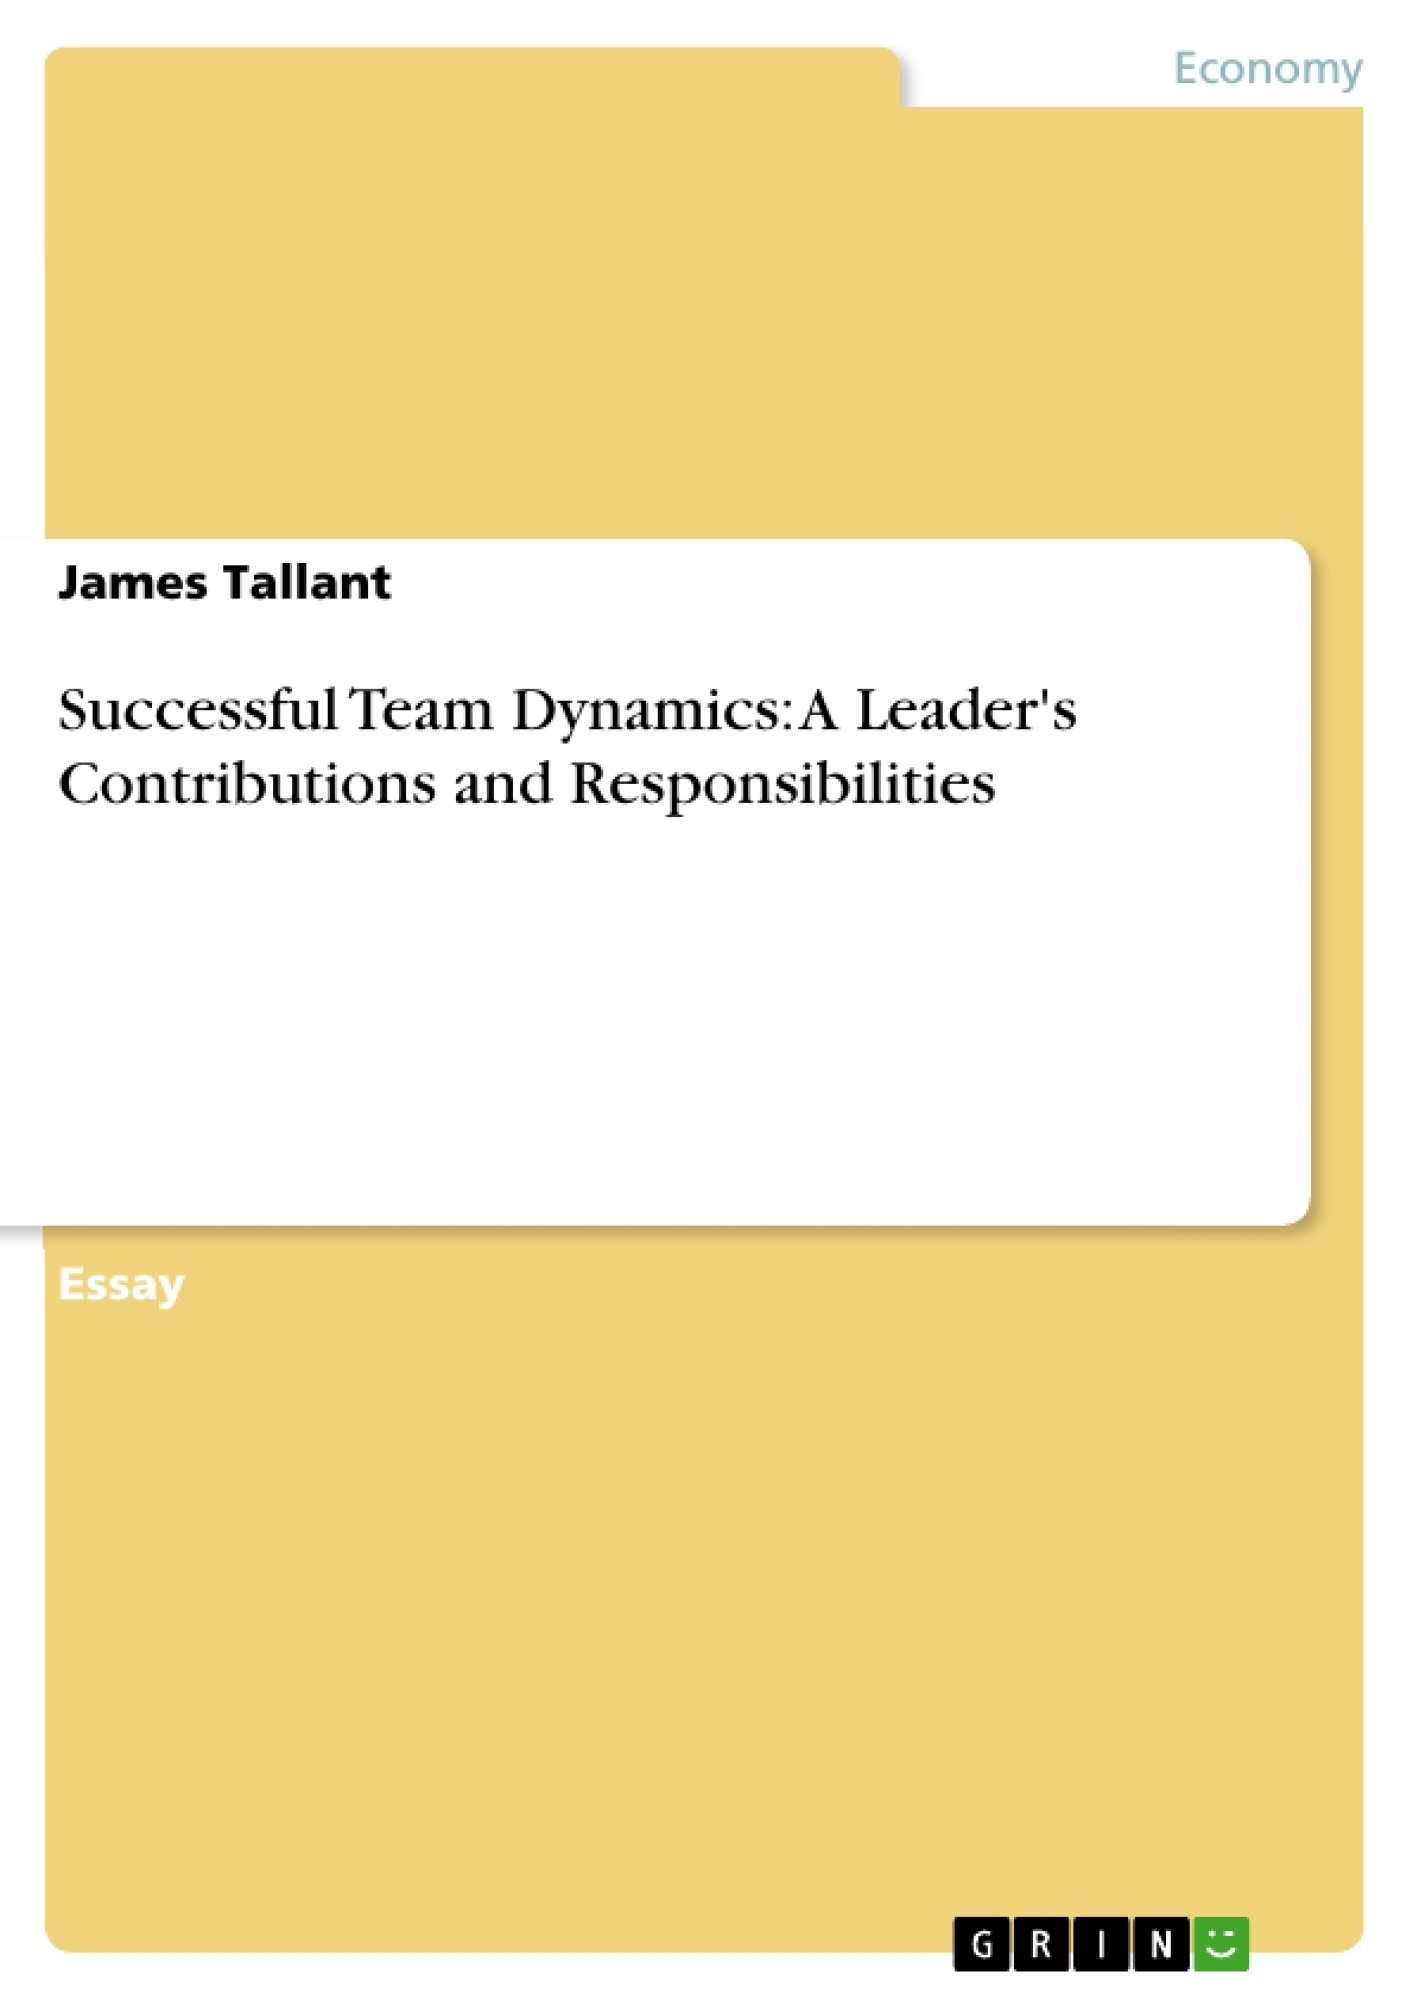 Leadership term papers